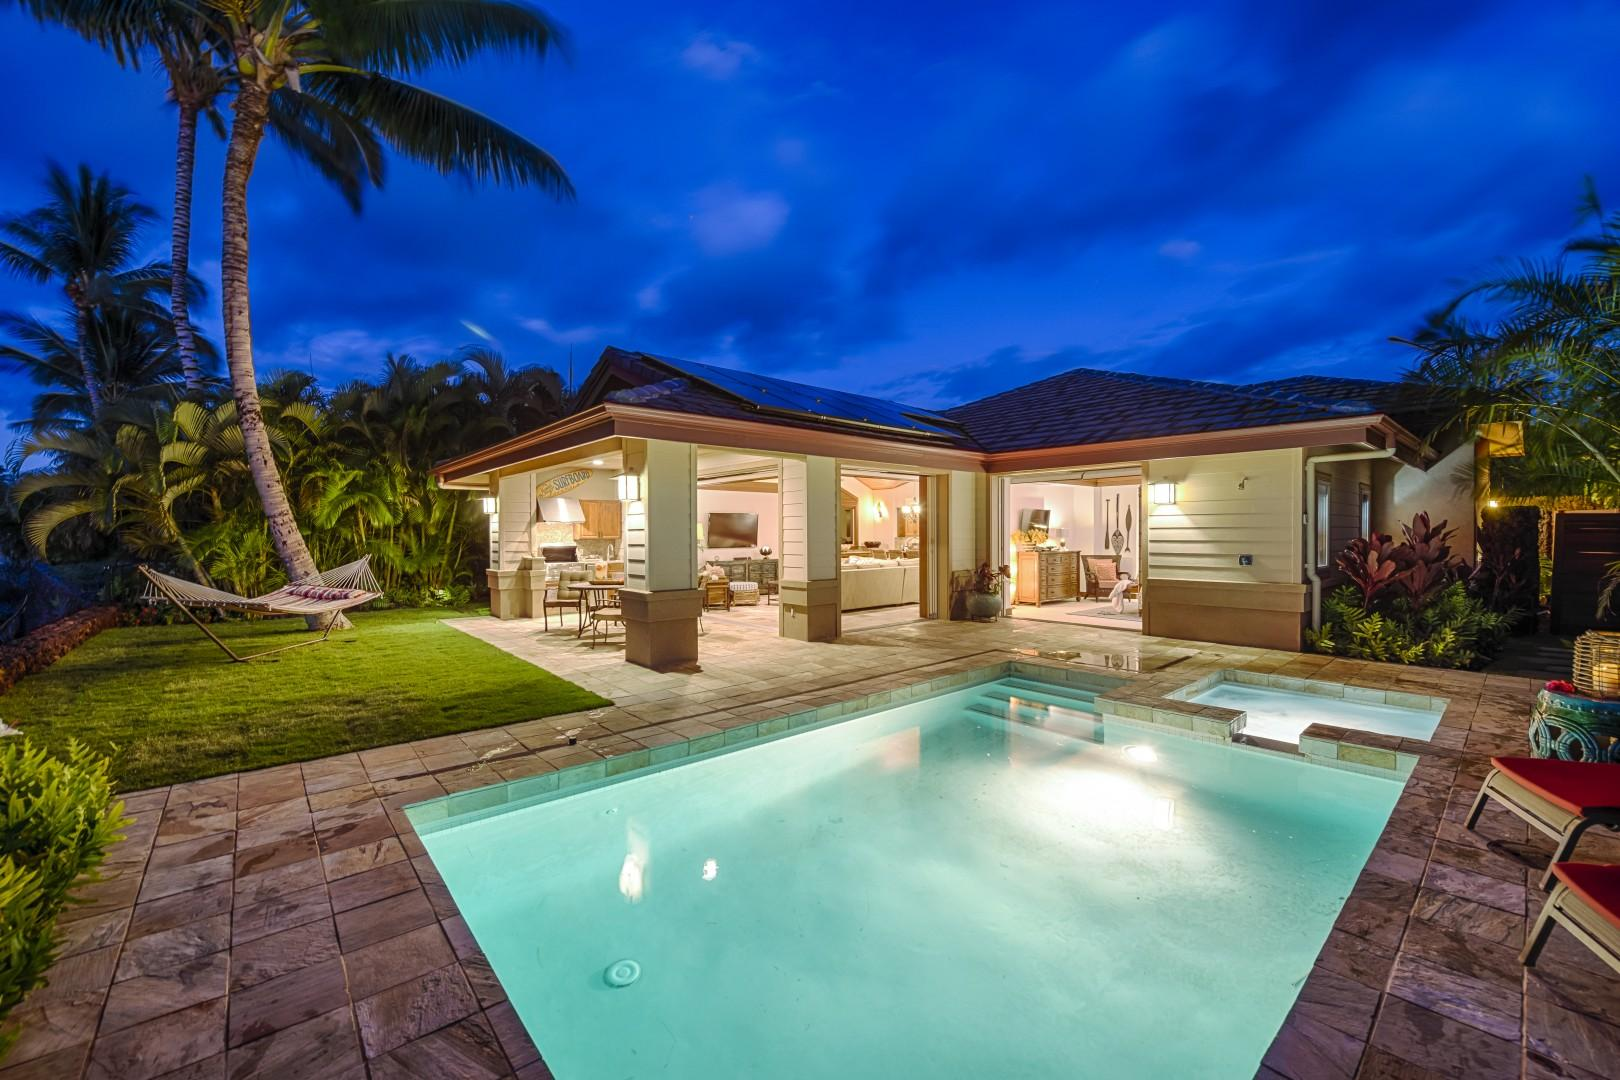 DAY OR NIGHT, THIS HOME SHINES!